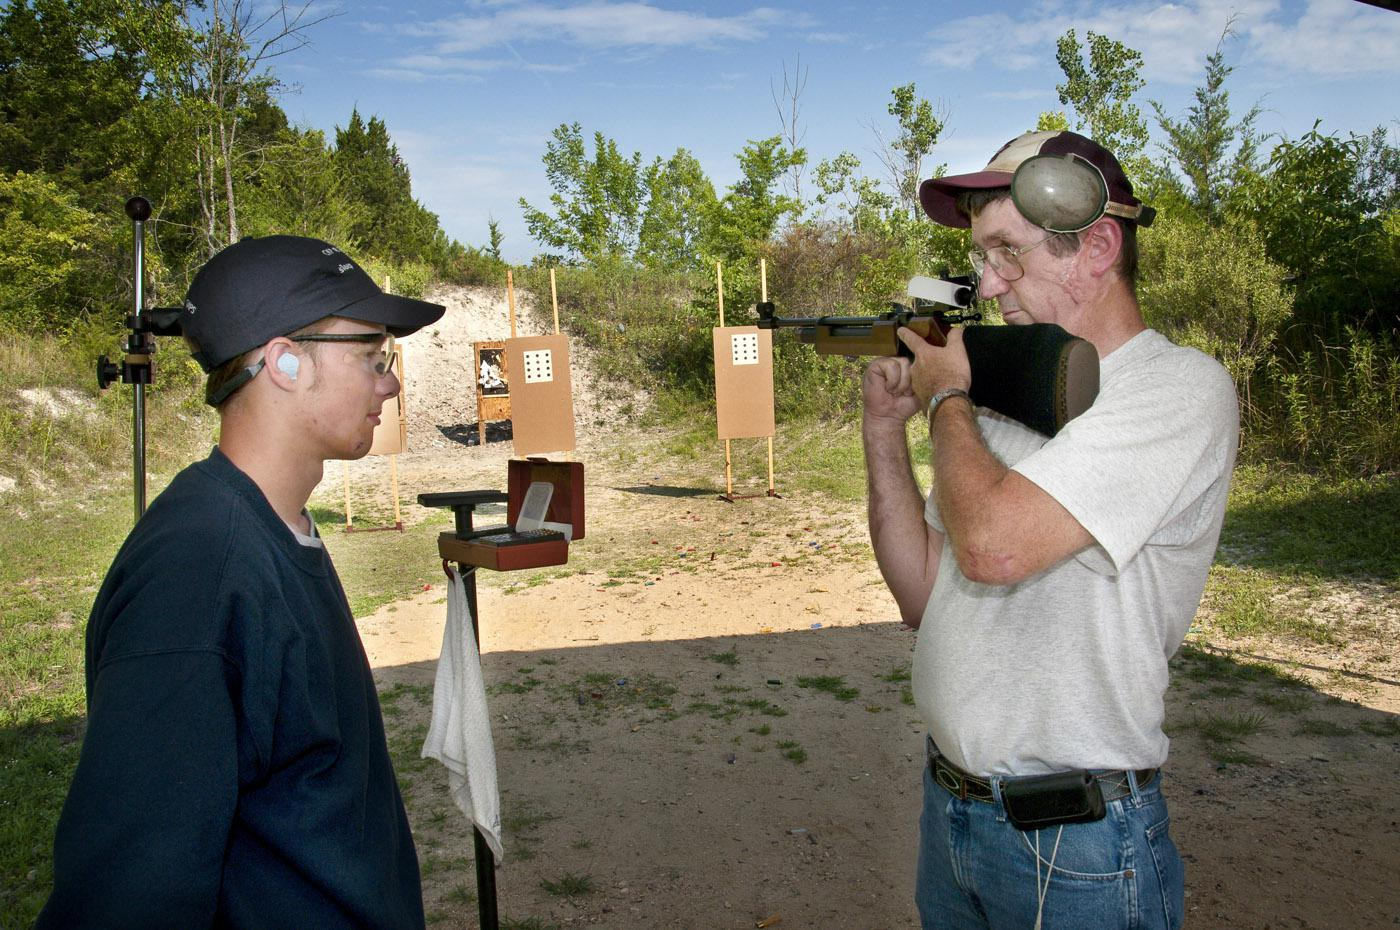 Shooting In Lowndes County Mississippi - Luke south of tishomingo county receives instruction from coach william baldwin at the mississippi 4